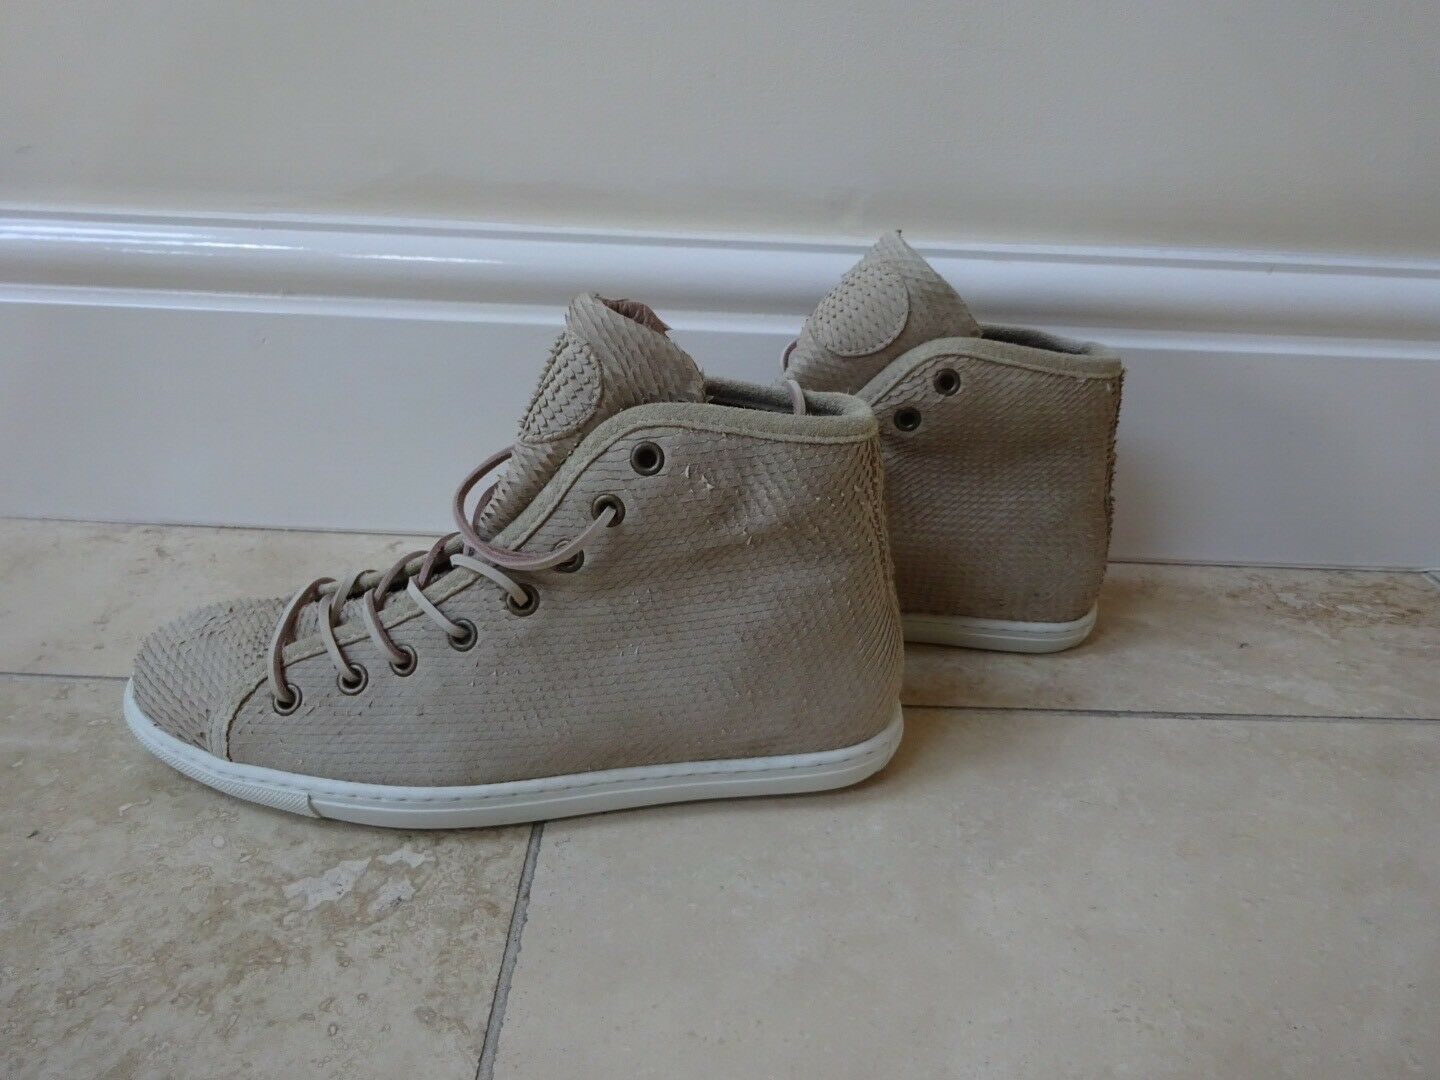 Designer PRIVATE  High Beige 100% Real Leder High  Top Trainers  Turnschuhe UK6/39 NEW c5c80a